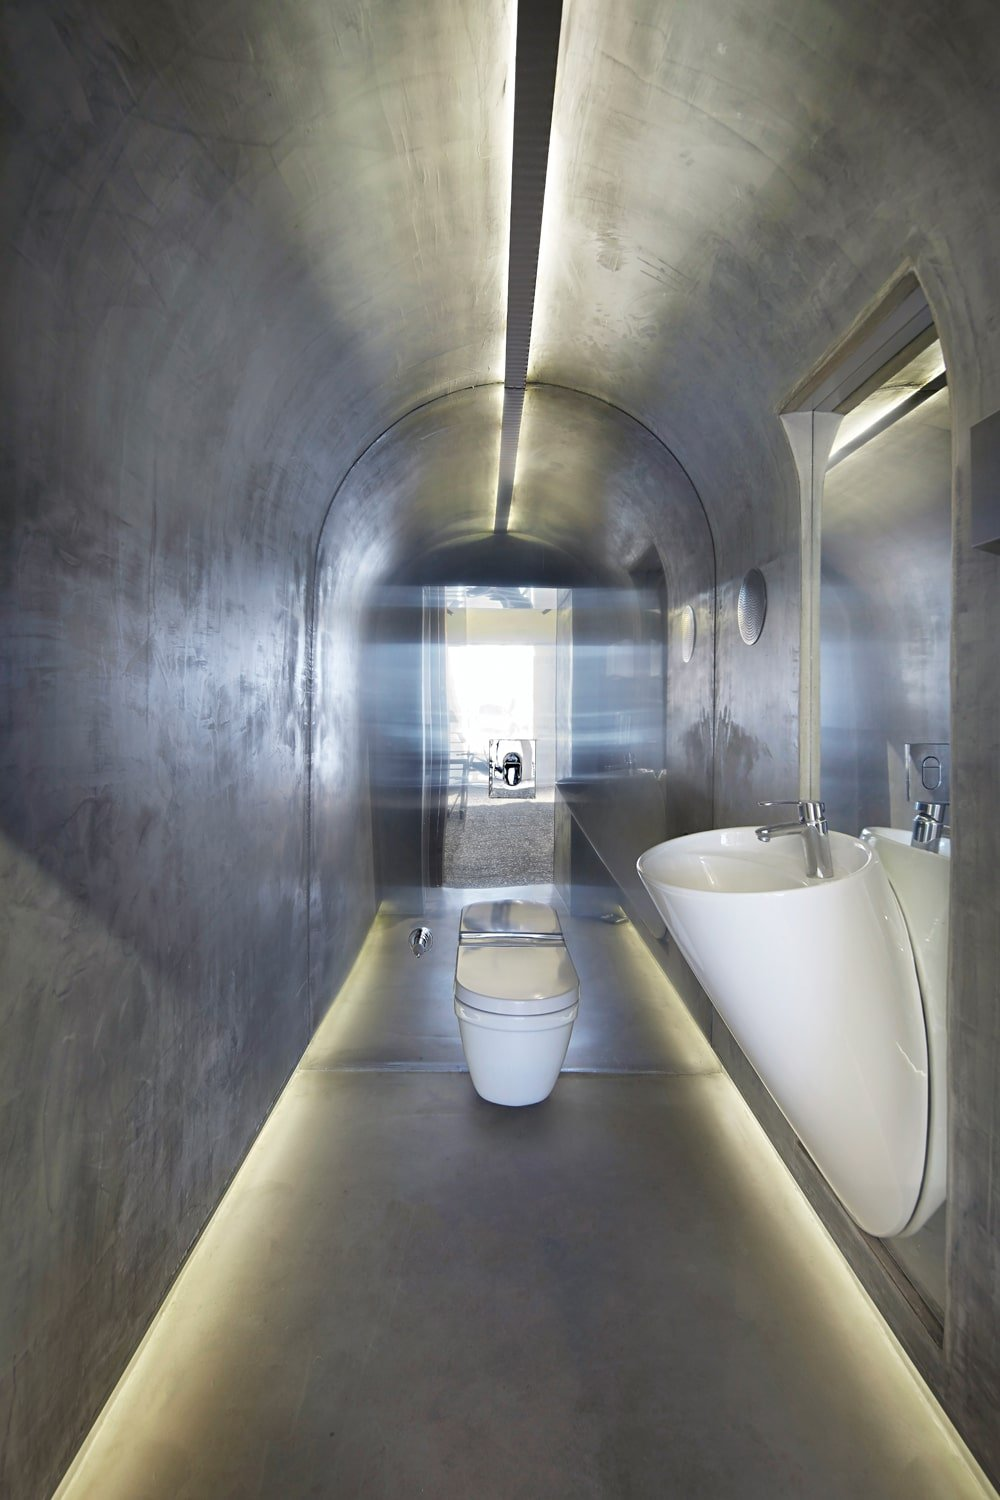 The small bathroom is augmented by the mirror wall to make it appear bigger than it actually is. This has gray walls that blend with the cove ceiling that makes the white porcelain sink and toilet stand out.